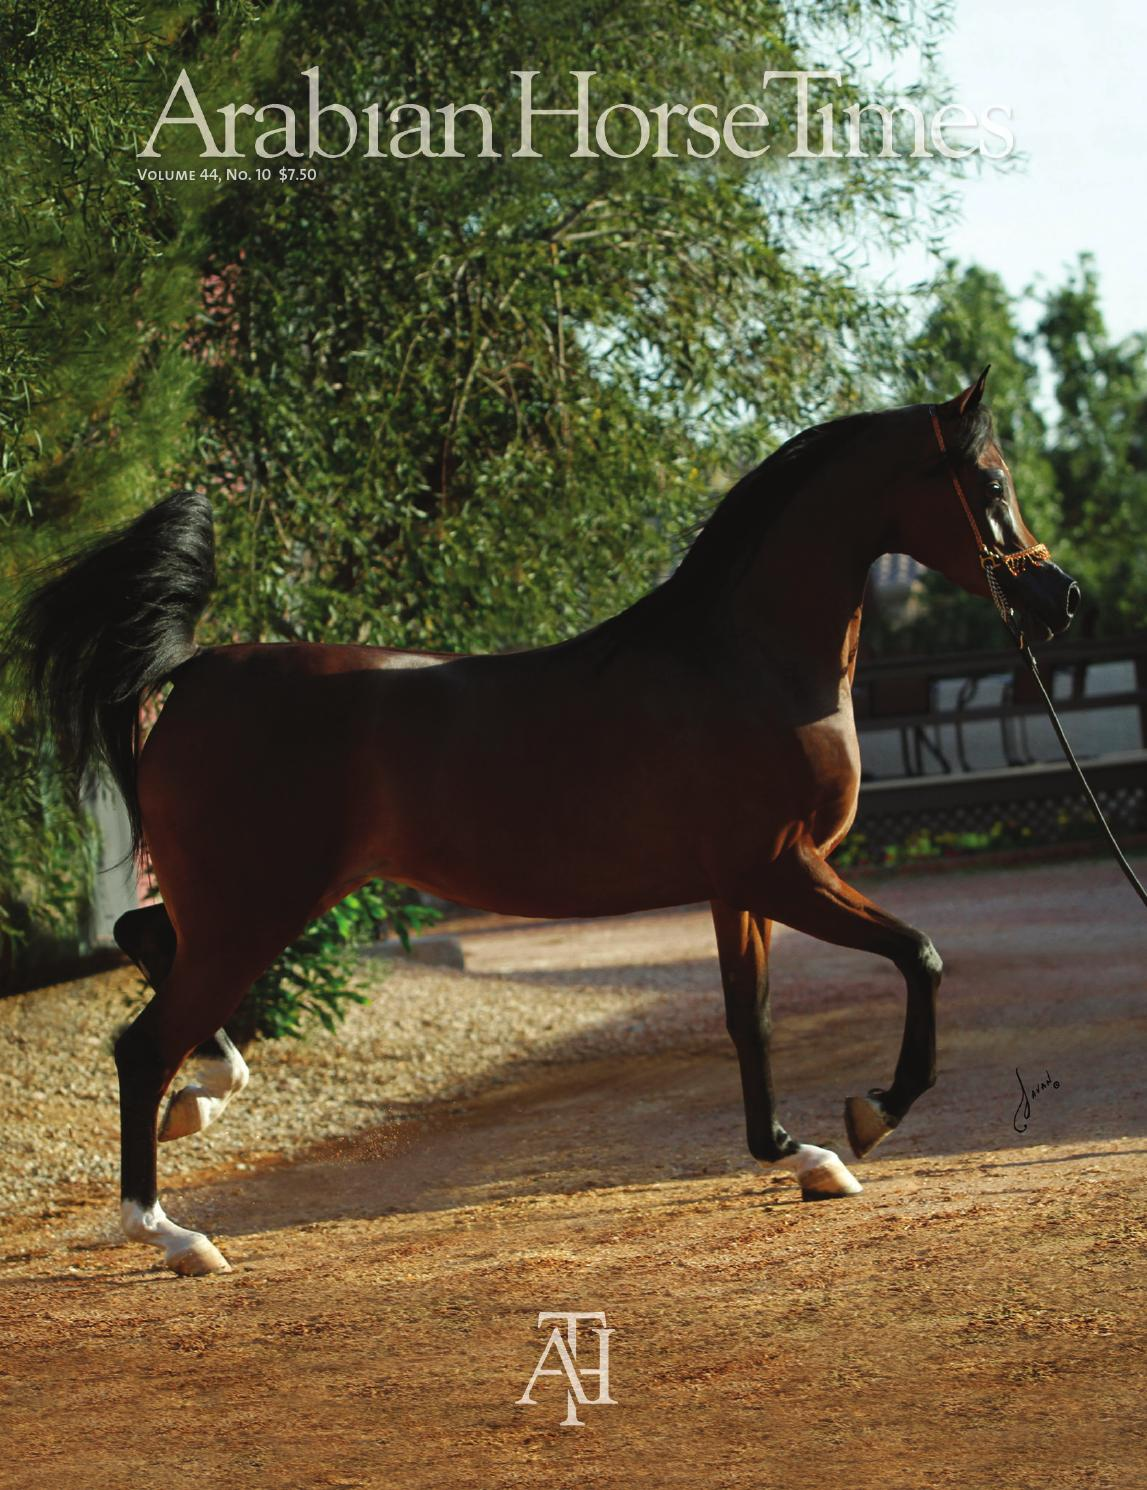 Arabian Horse Times, Volume 44 No. 10 by Arabian Horse Times - issuu